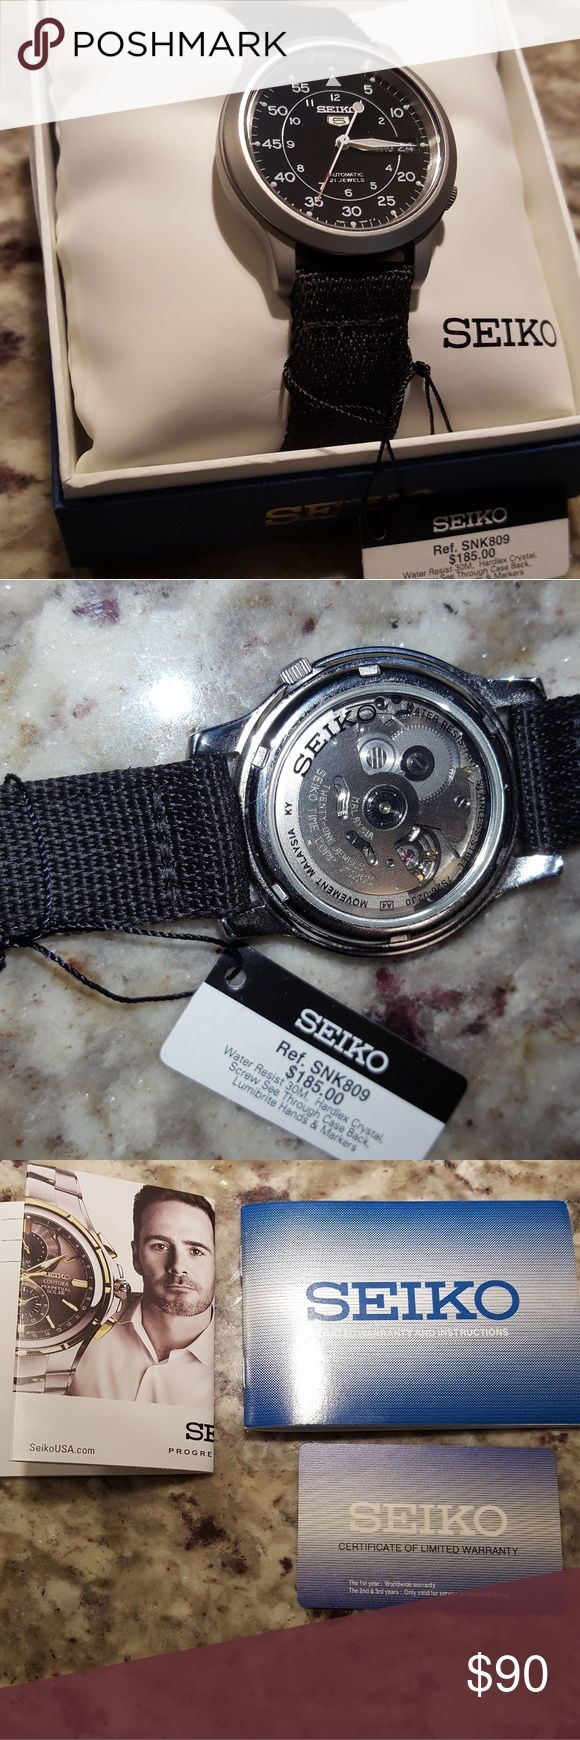 Seiko automatic watch w/ box & papers Stainless steel case with a black canvas bracelet. Fixed stainless steel bezel. Black dial with luminous hands and Arabic numeral hour markers. Arabic numeral minute markers (at 5 minute intervals). minute markers around the outer rim.  Luminescent hands. Day of the week and date display at the 3 o'clock position. Seiko Caliber 7S26 automatic movement with about 40 hours of power reserve. Scratch resistant hardlex crystal. (suitable for snorkeling, as…